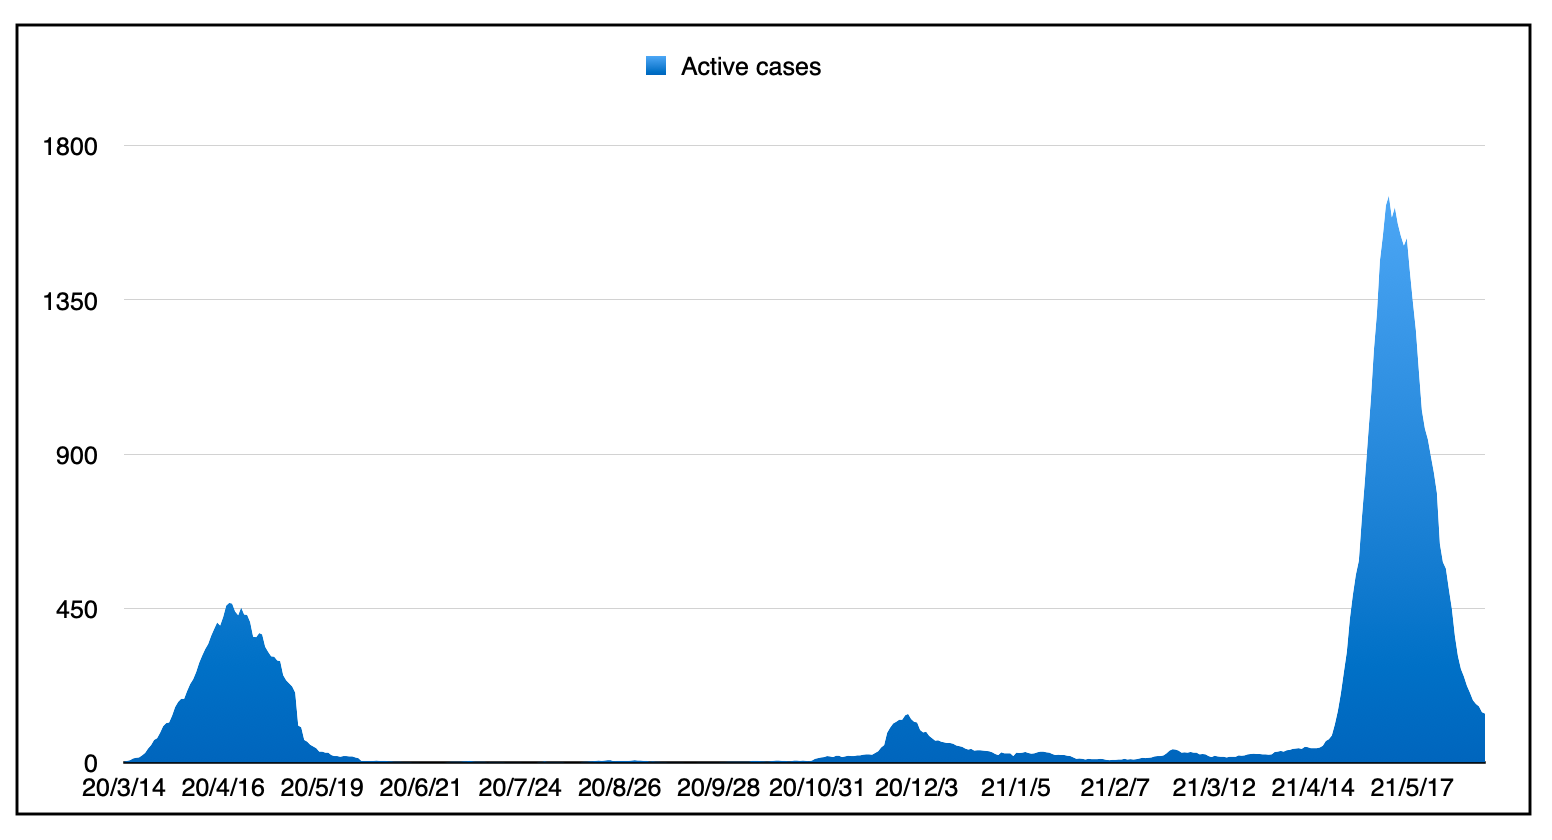 A graph showing the three waves of the active caseload from the start of the pandemic in March 2020